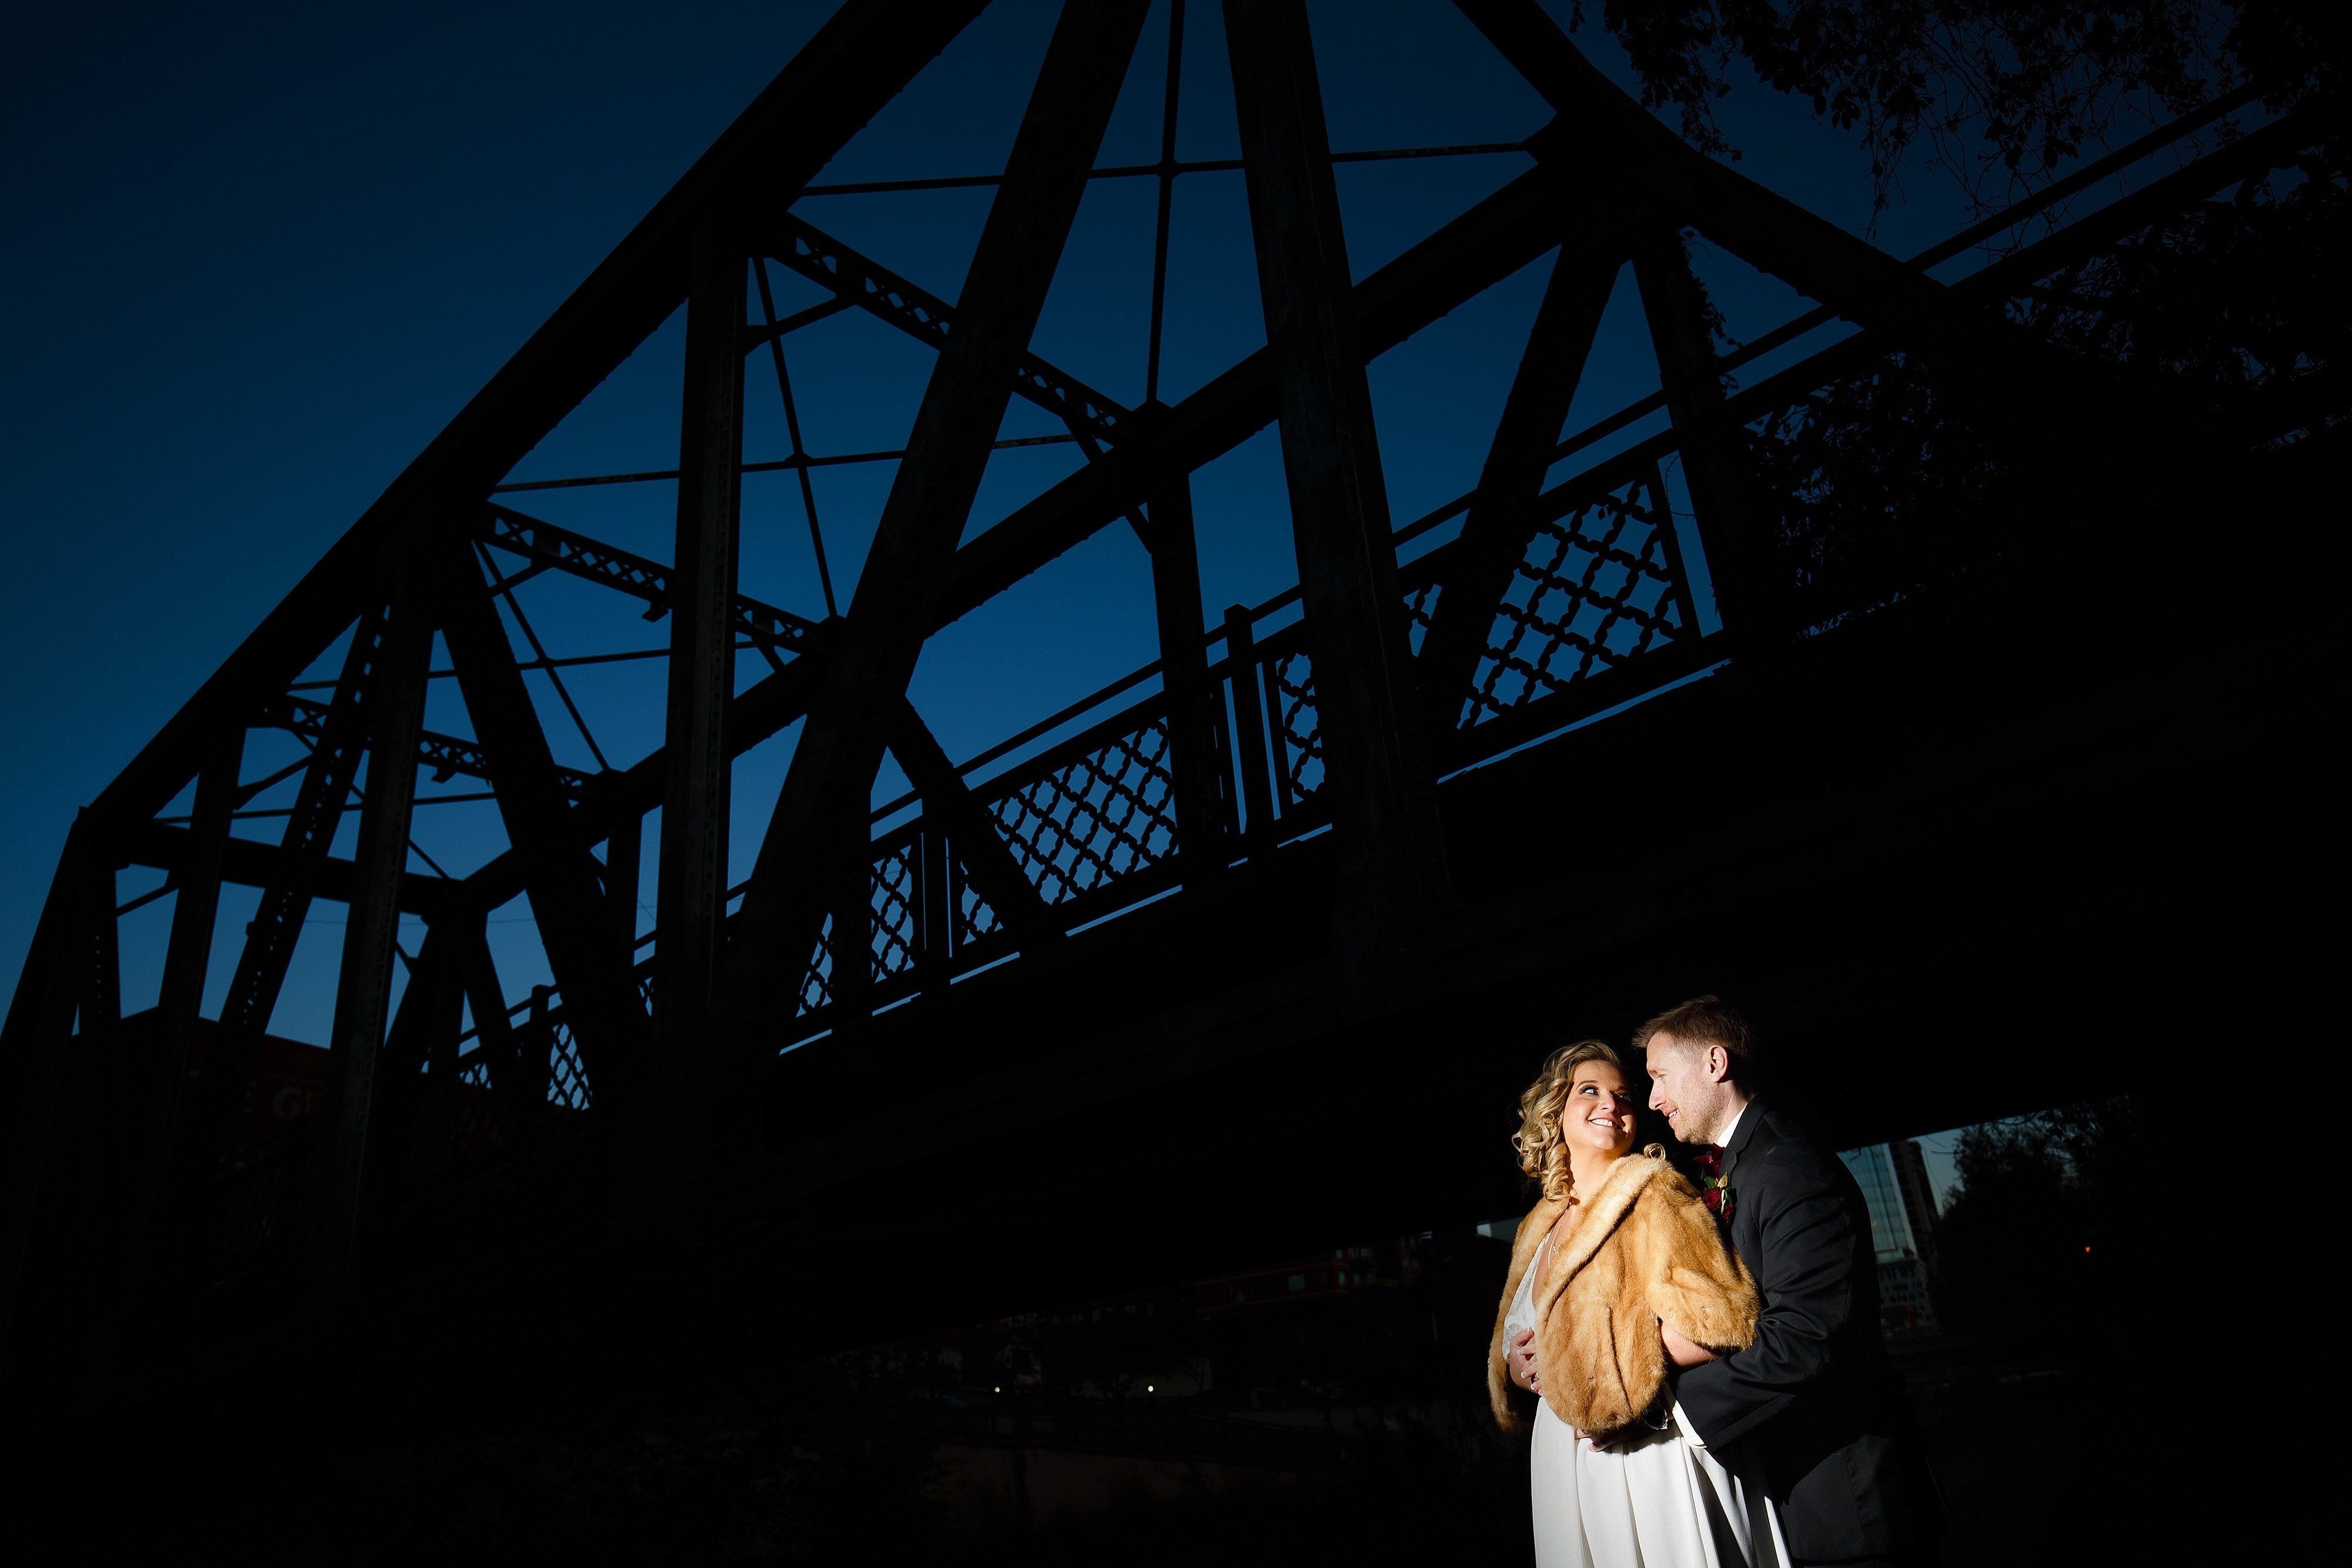 The couple is illuminated under the Wynkoop Street bridge during twilight after their fall wedding in Denver